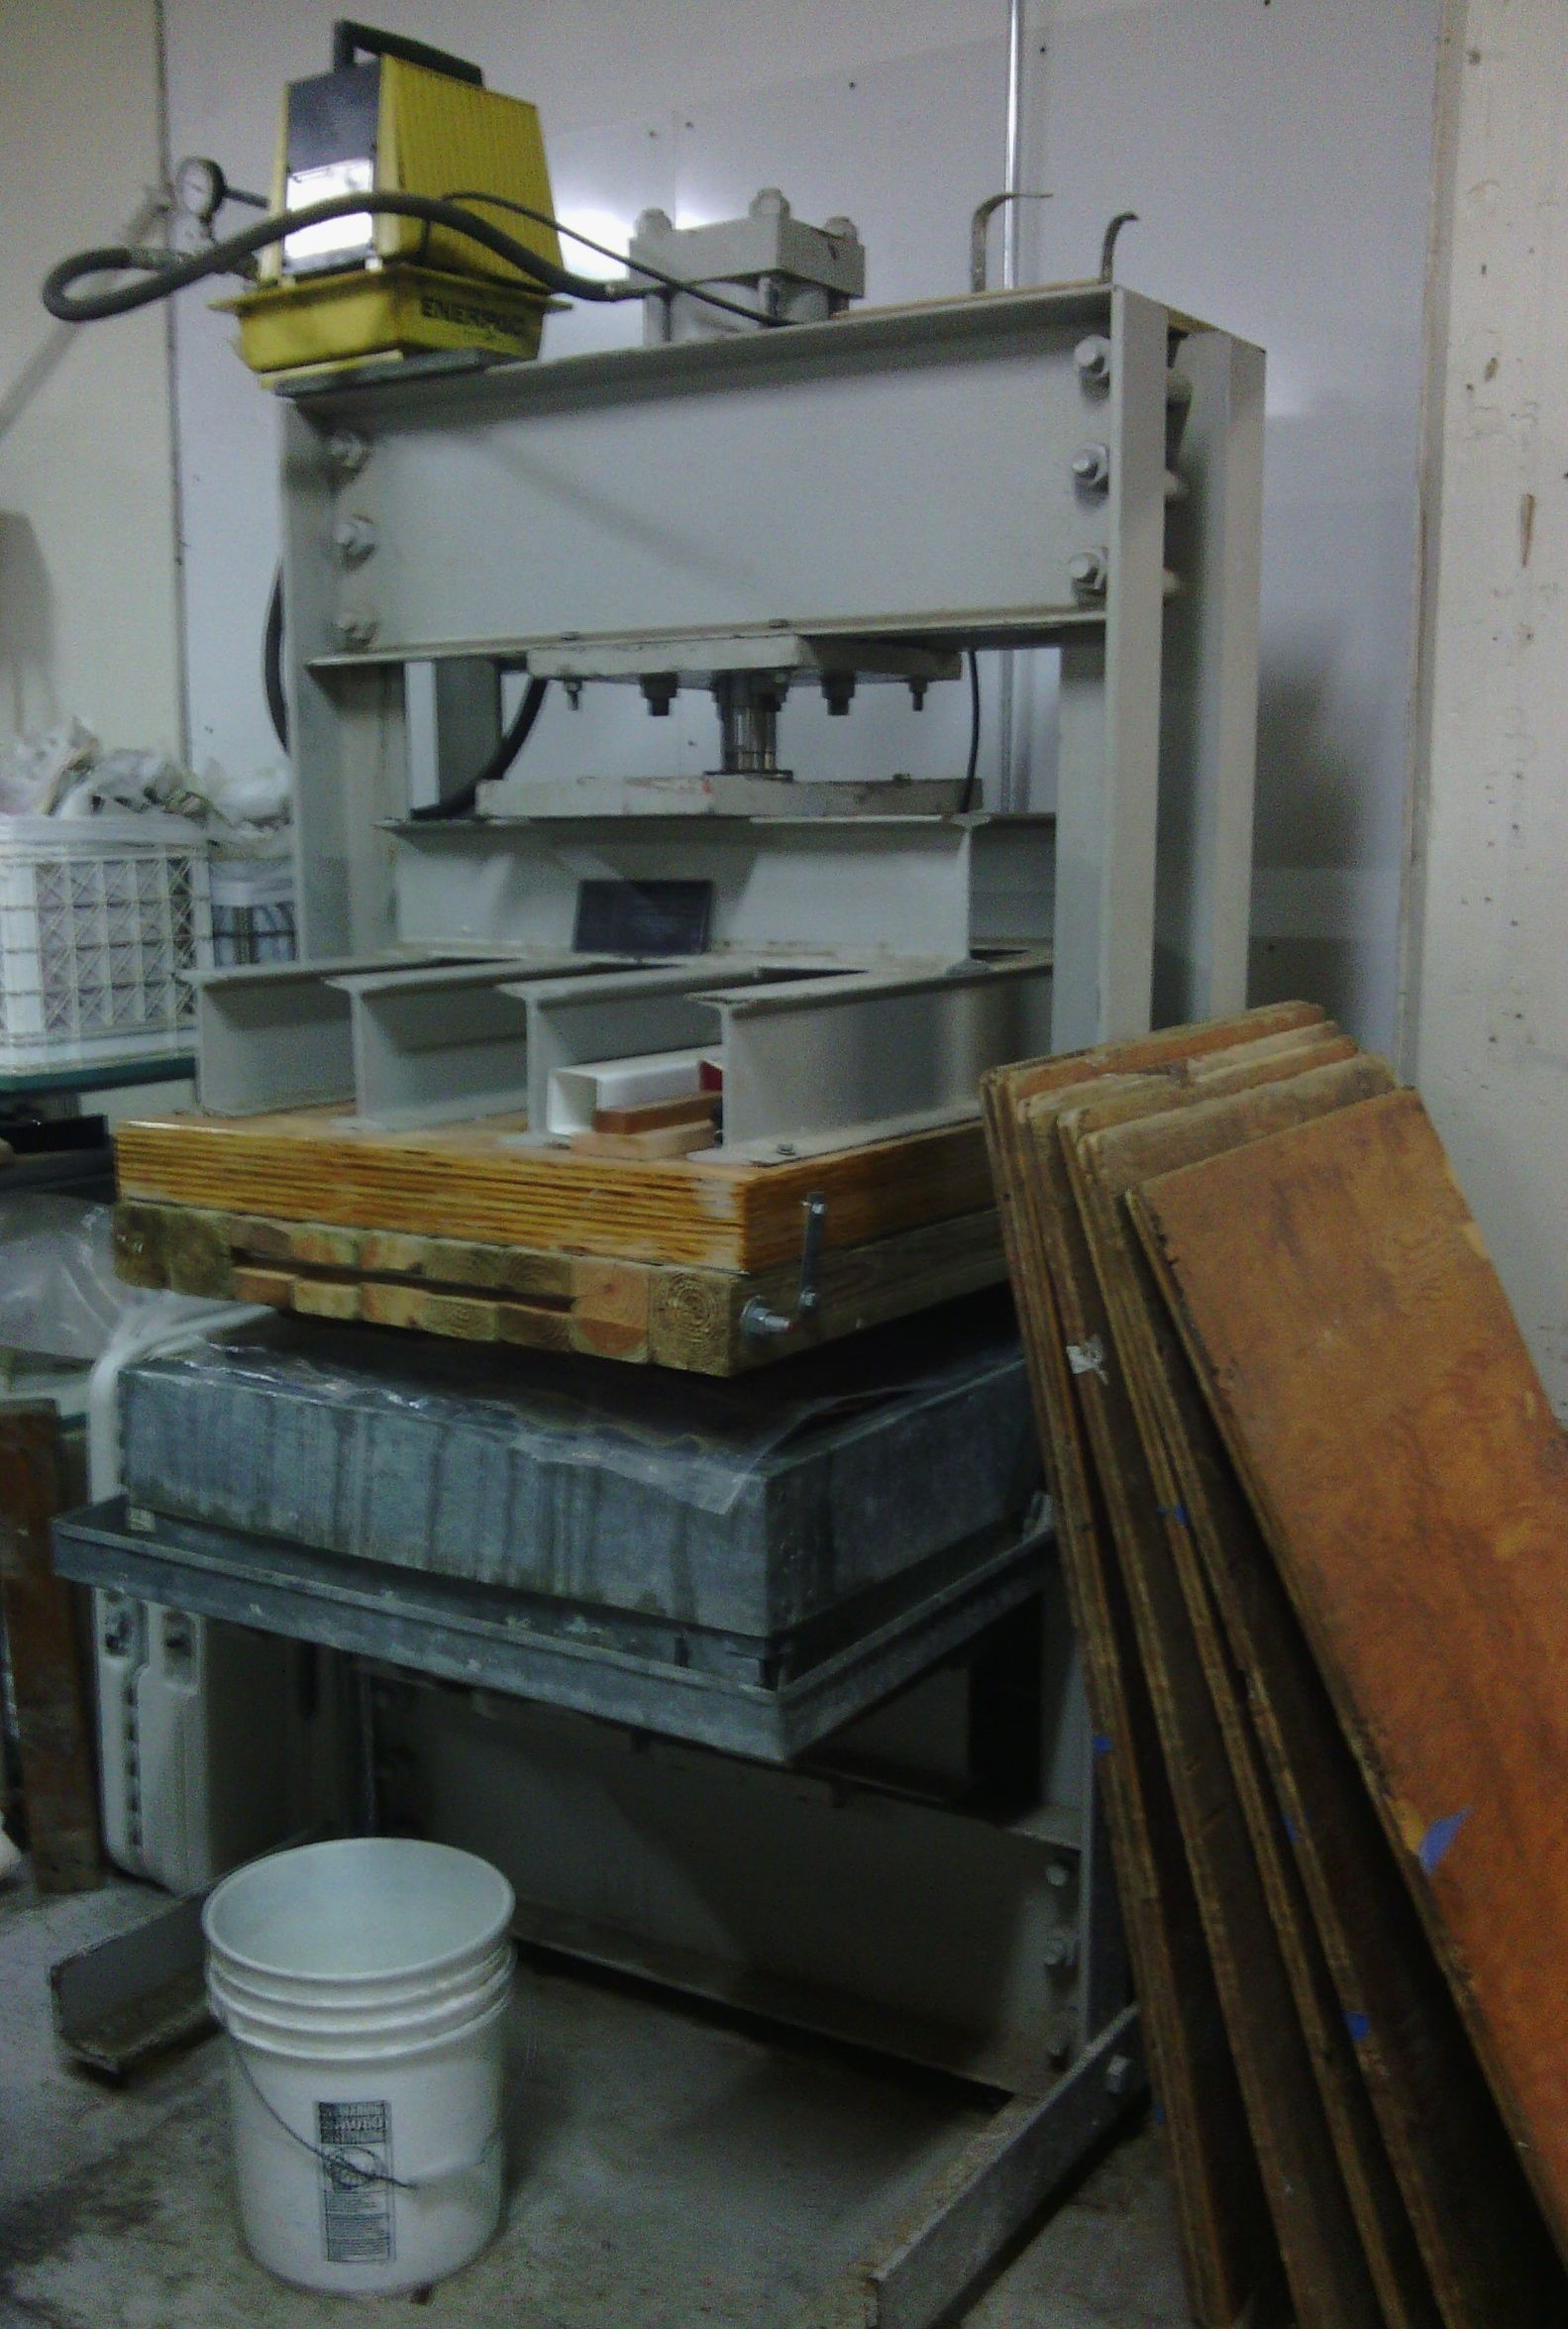 One of the presses for paper making at the Kalamazoo Book Arts Center, where I've been taking classes. My studio is is in the same building -- the Park Trades Center.